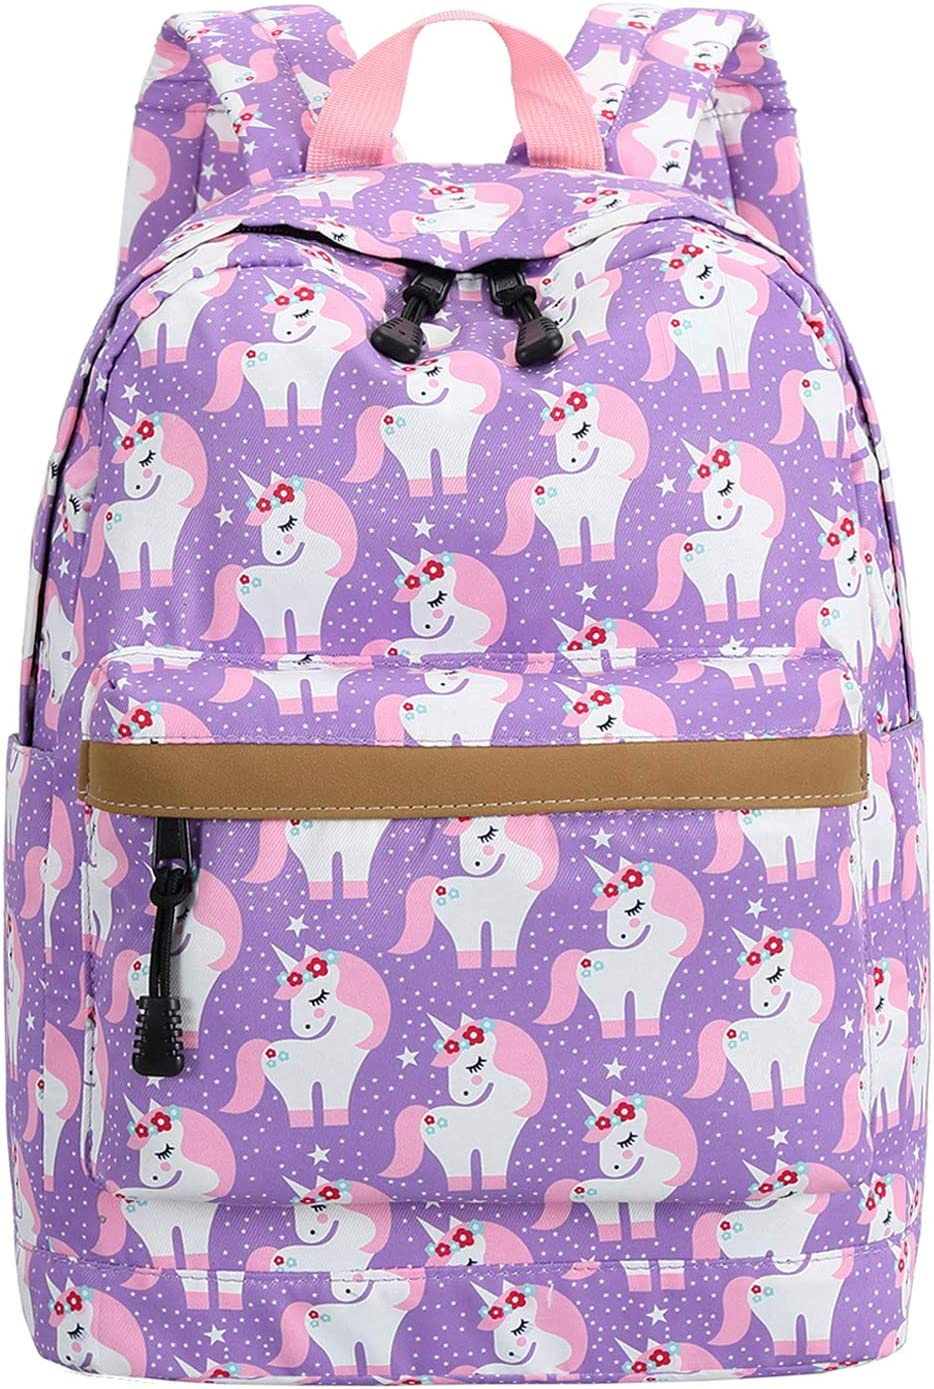 Preschool Backpack for Kids Girls Toddler Backpack Kindergarten School Bookbags (Cute unicorn-Purple)